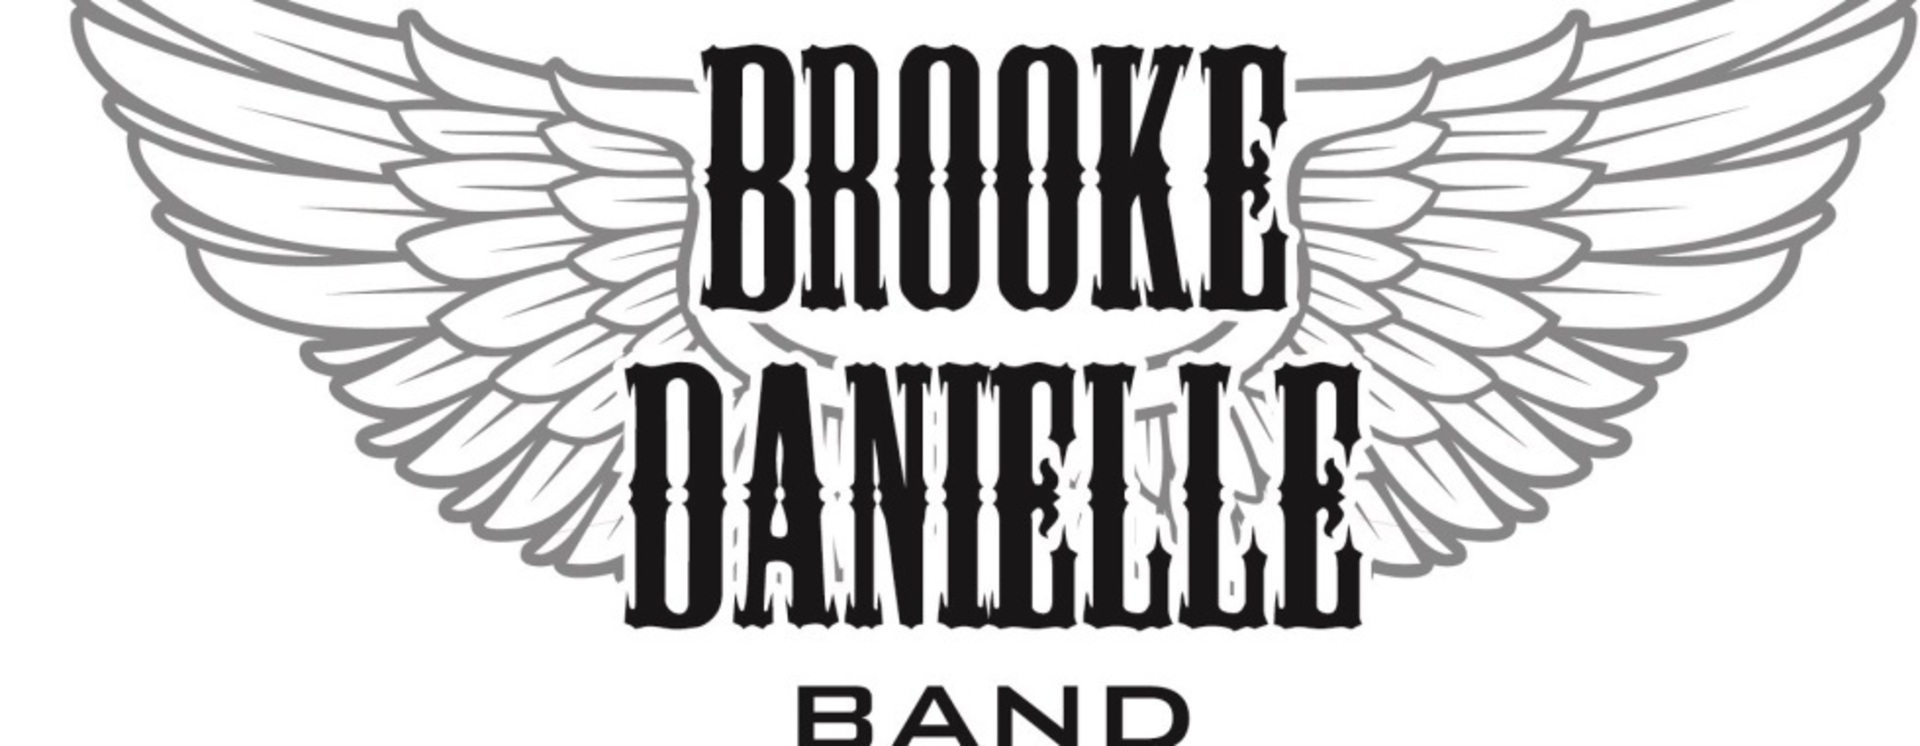 Brookedanielleband copy